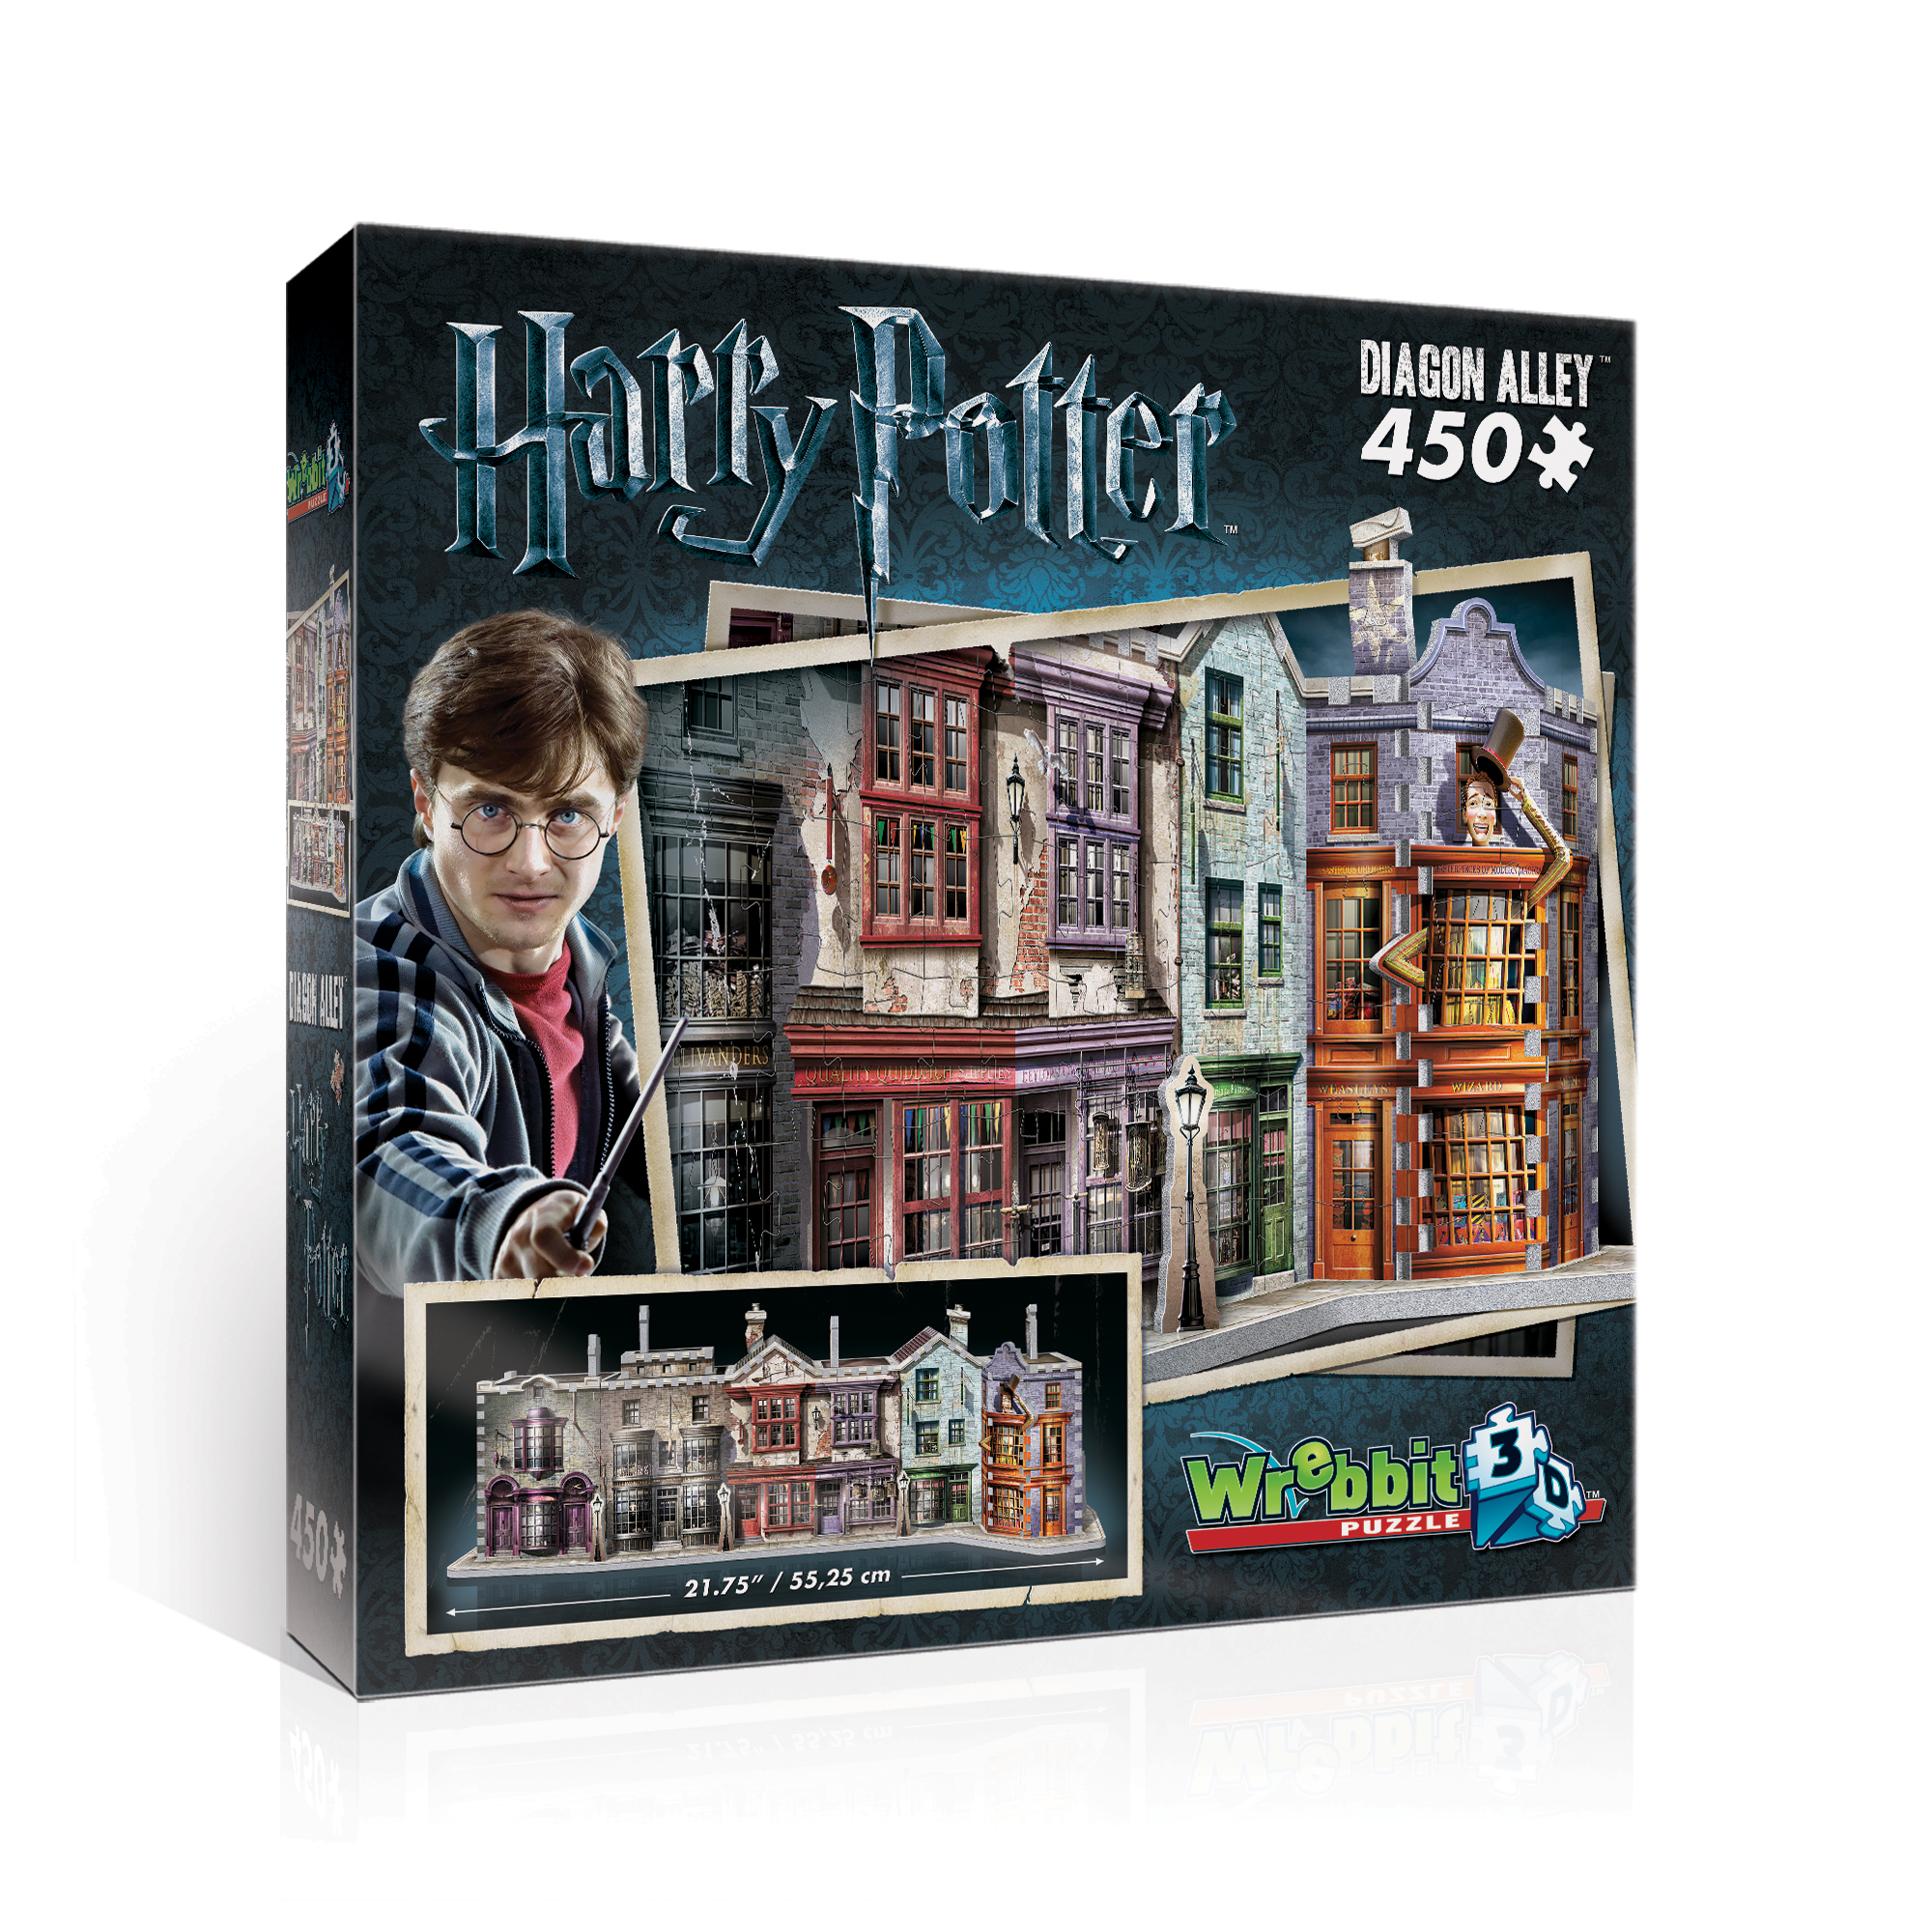 Wrebbit Diagon Alley 450 Piece 3D Puzzle by Wrebbit